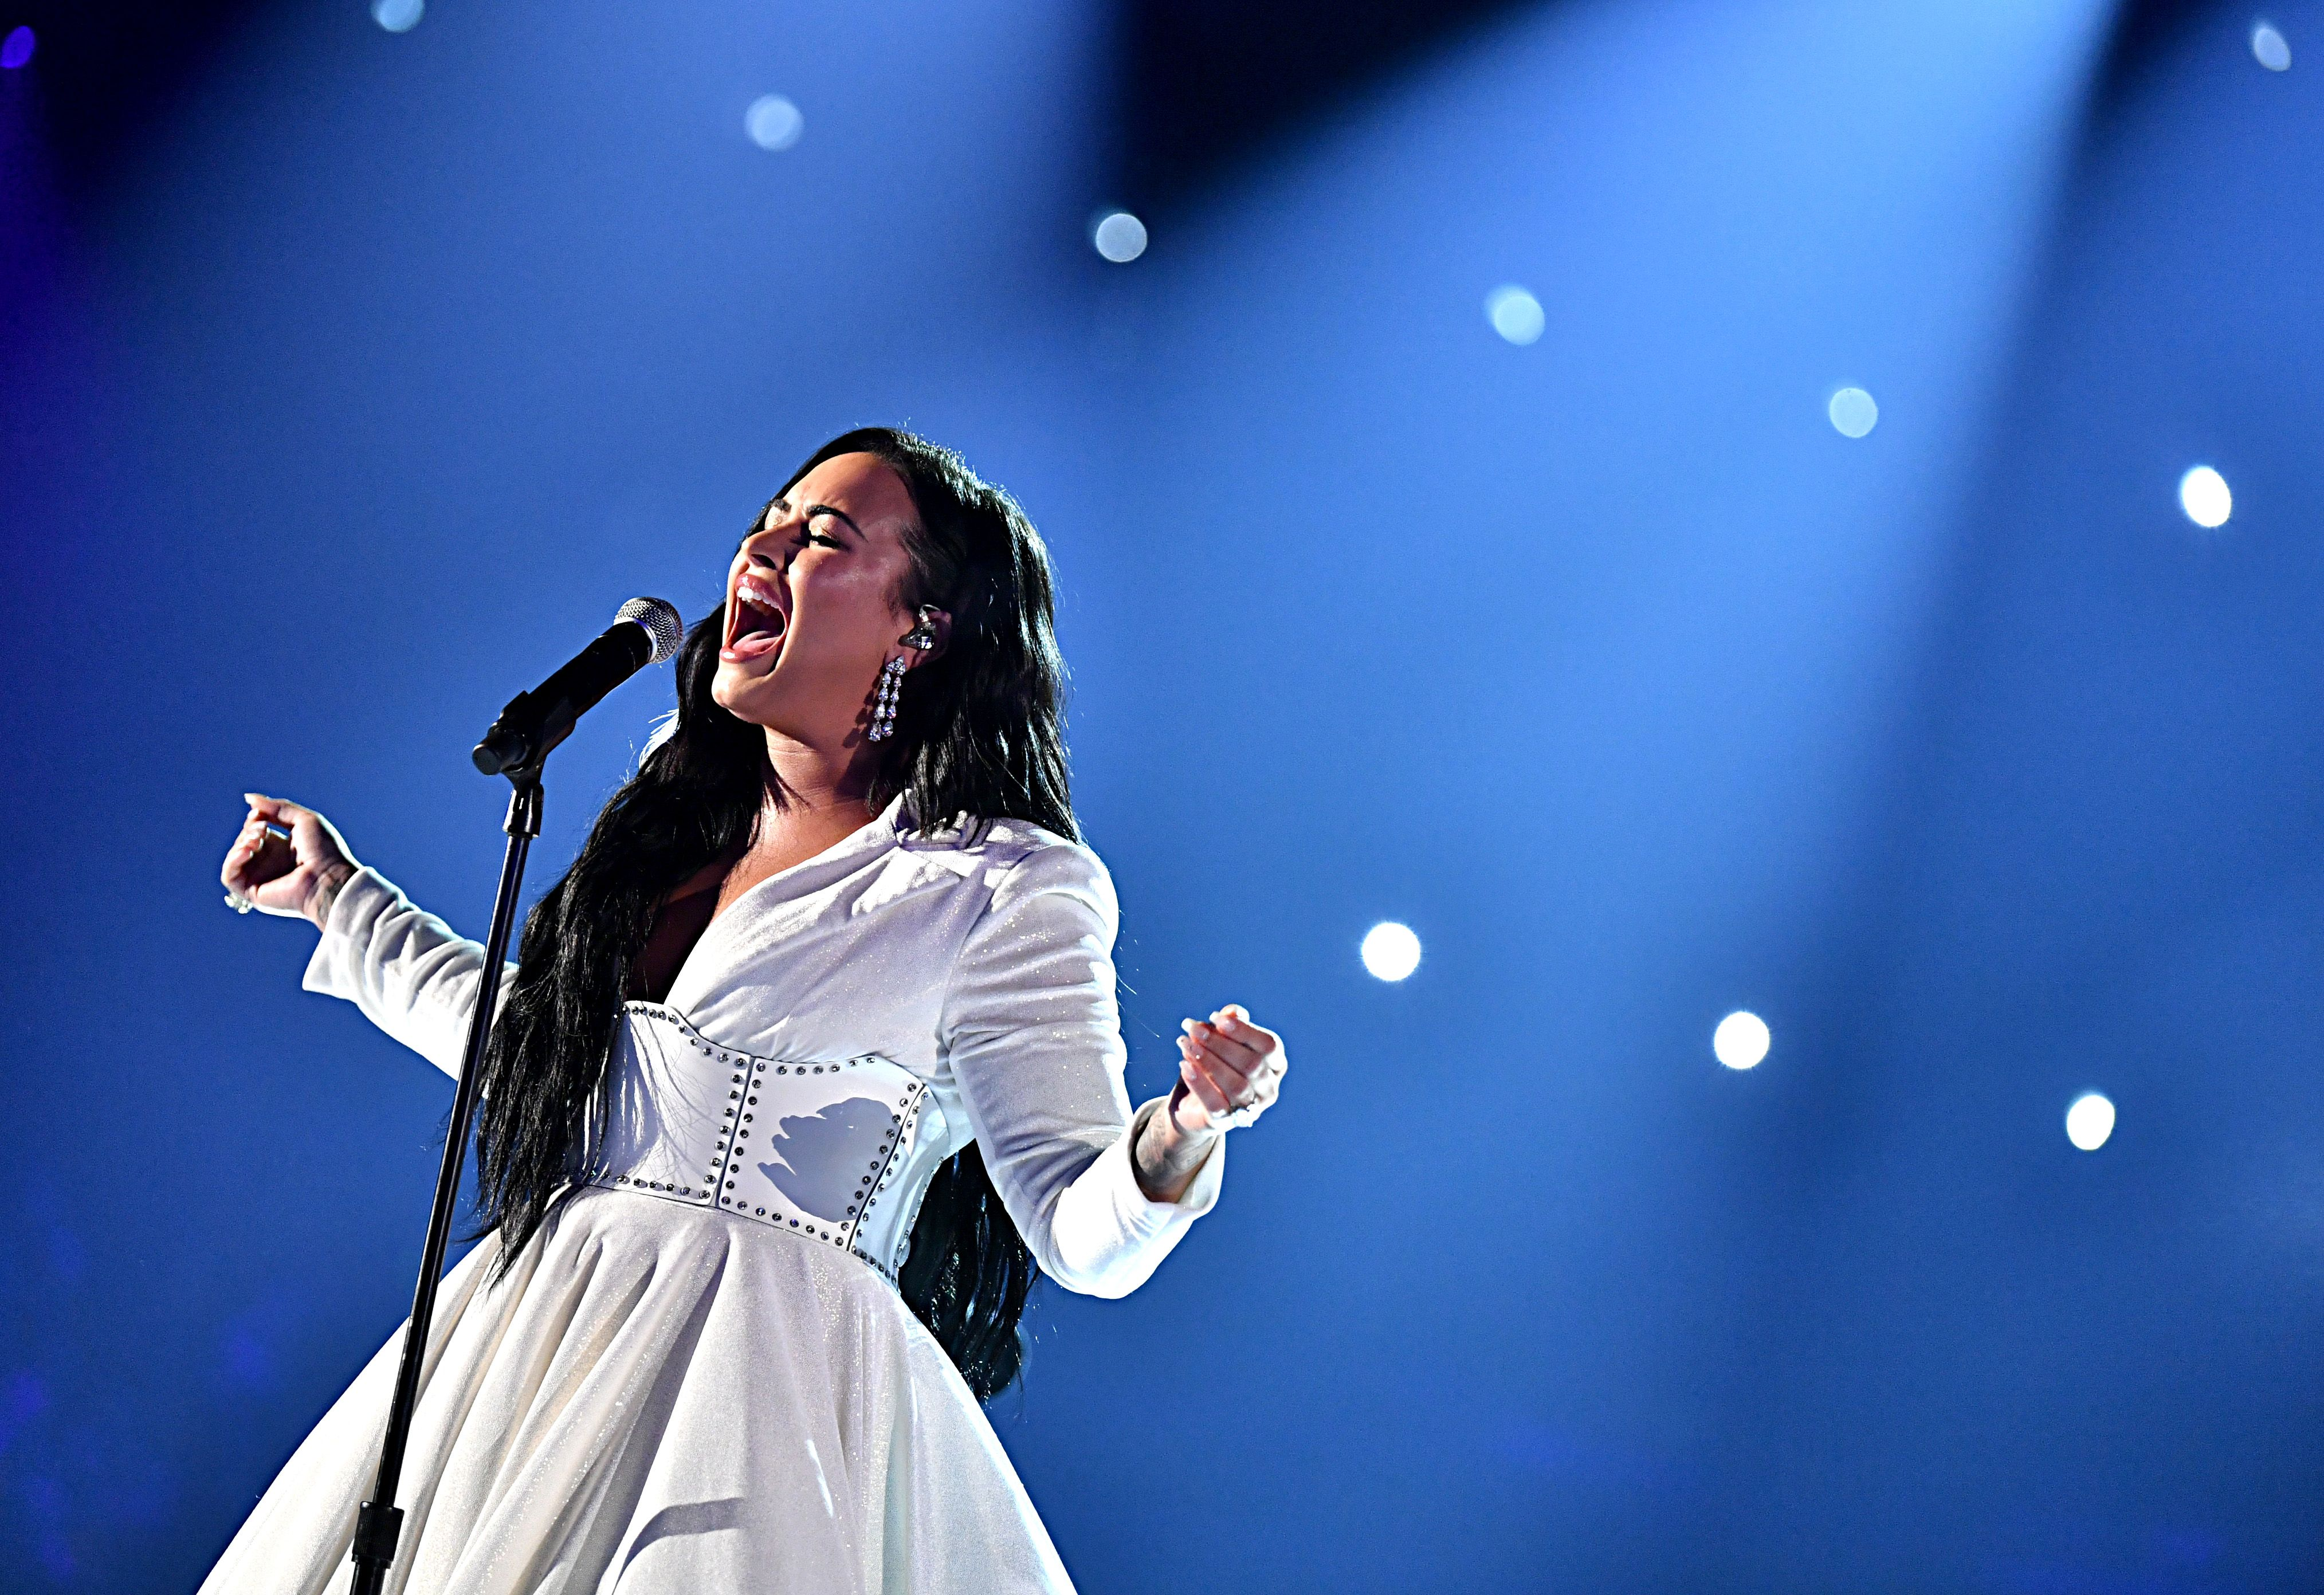 Demi Lovato performing at the Grammys.